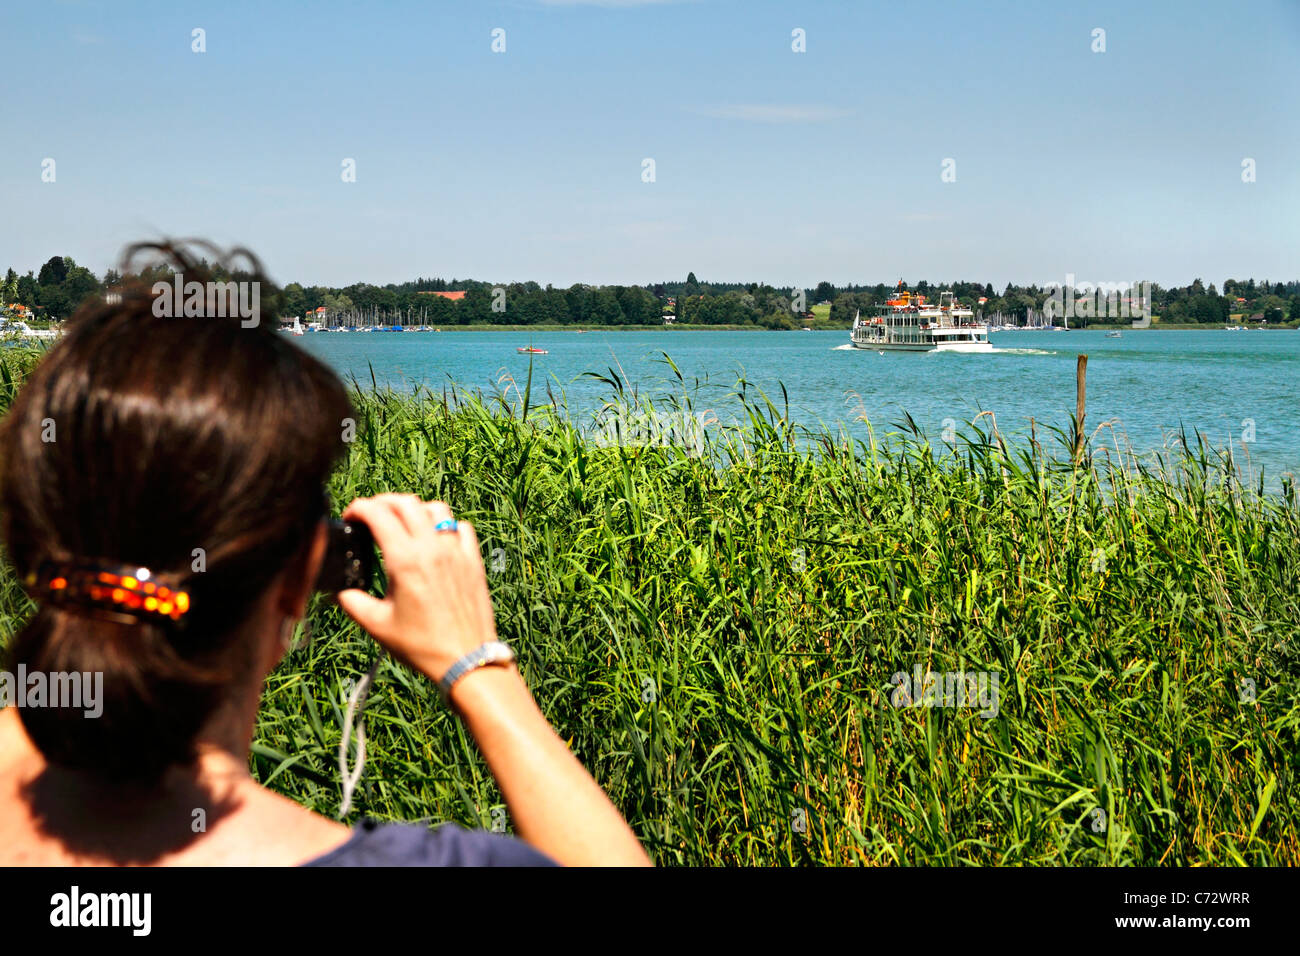 Woman taking a photo of a Chiemsee passenger ferry,Herrenchiemsee, Herreninsel Upper Bavaria Germany - Stock Image